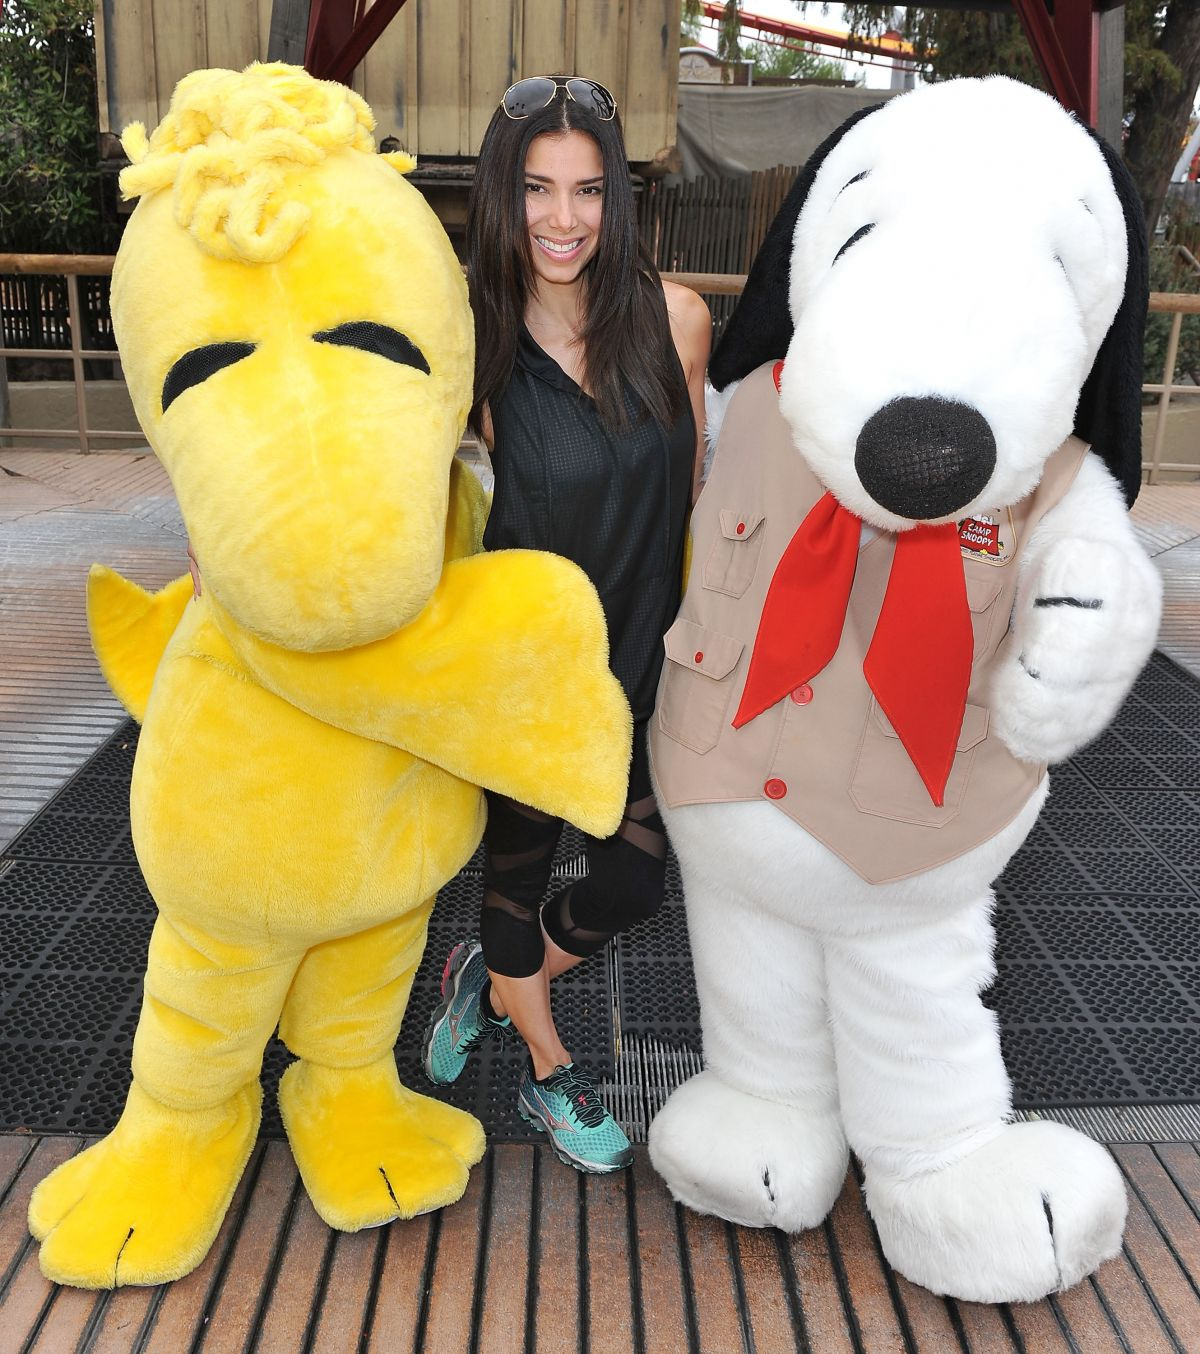 HQ Photos of Roselyn Sanchez at Camp Snoopy Knott's Berry Farm in Buena Park